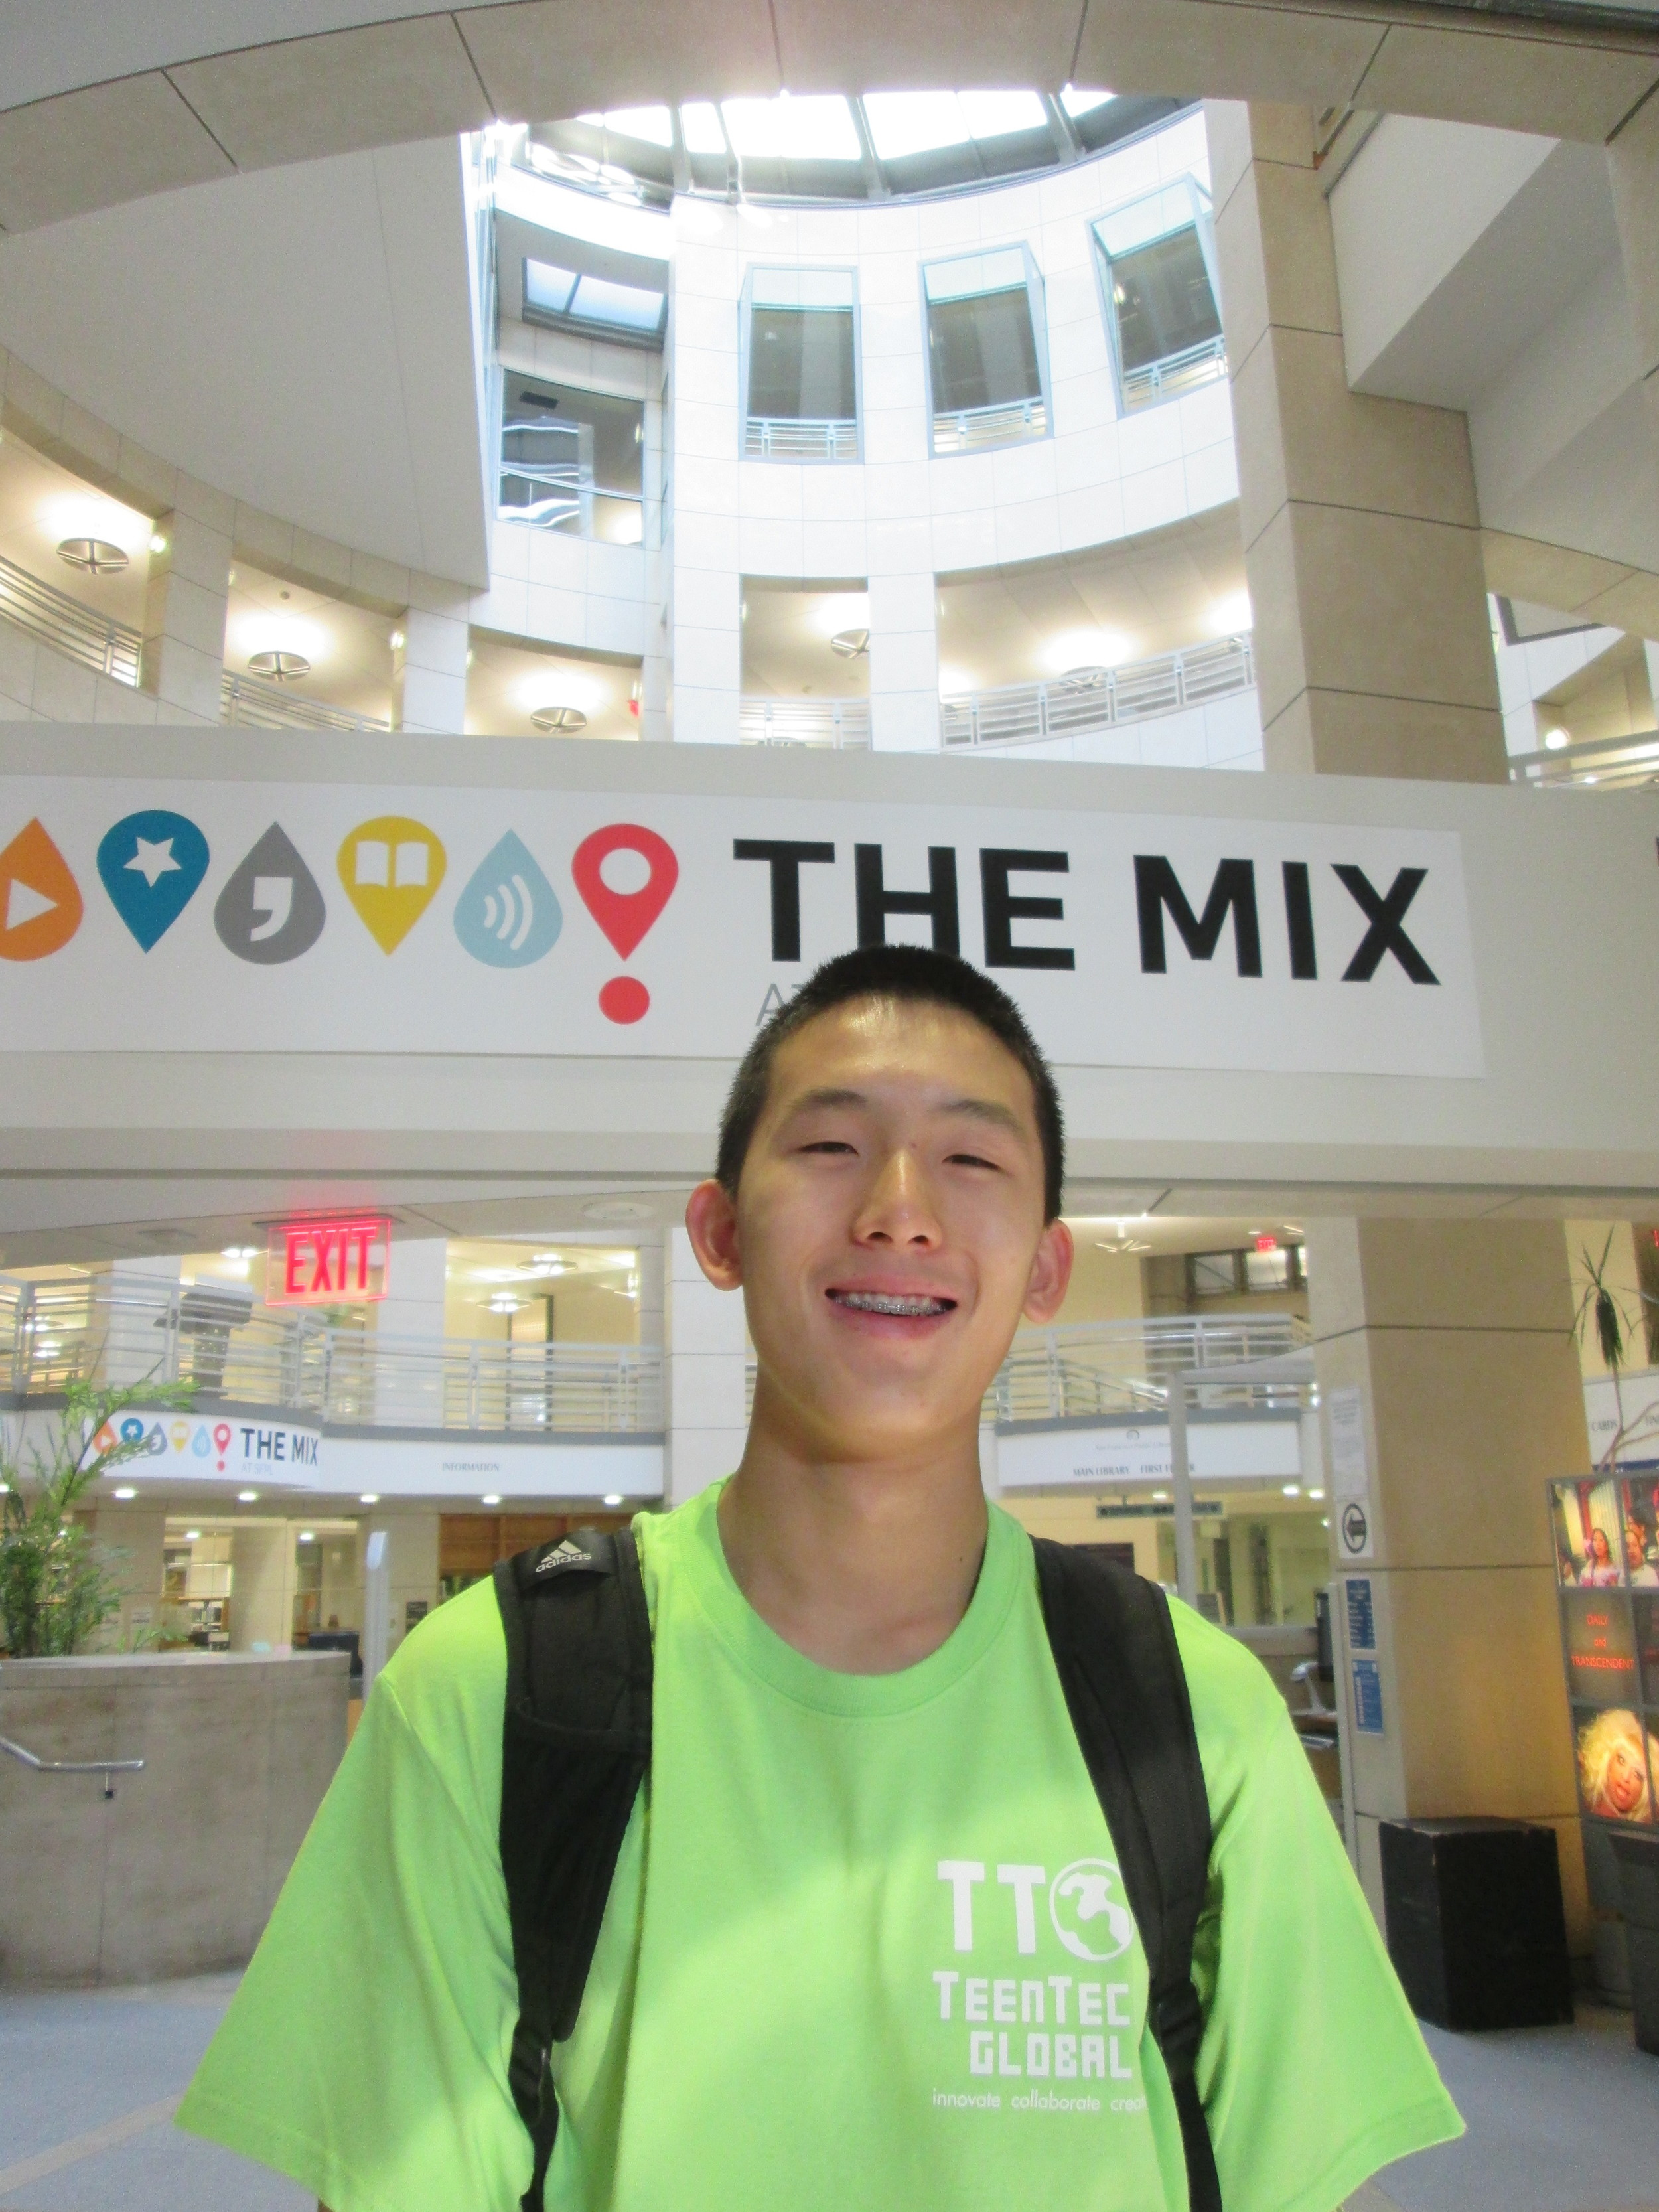 TTSF Leader Alex @TheMixatSFPL